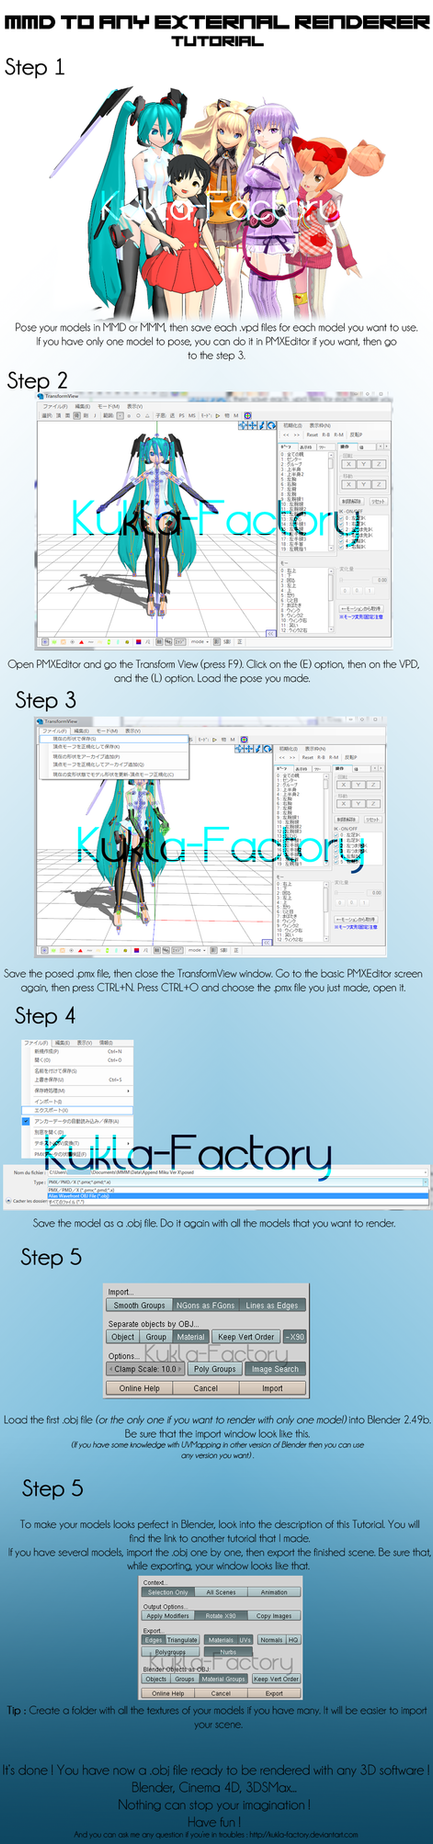 MMD to Any External Renderer Tutorial by Kukla-Factory